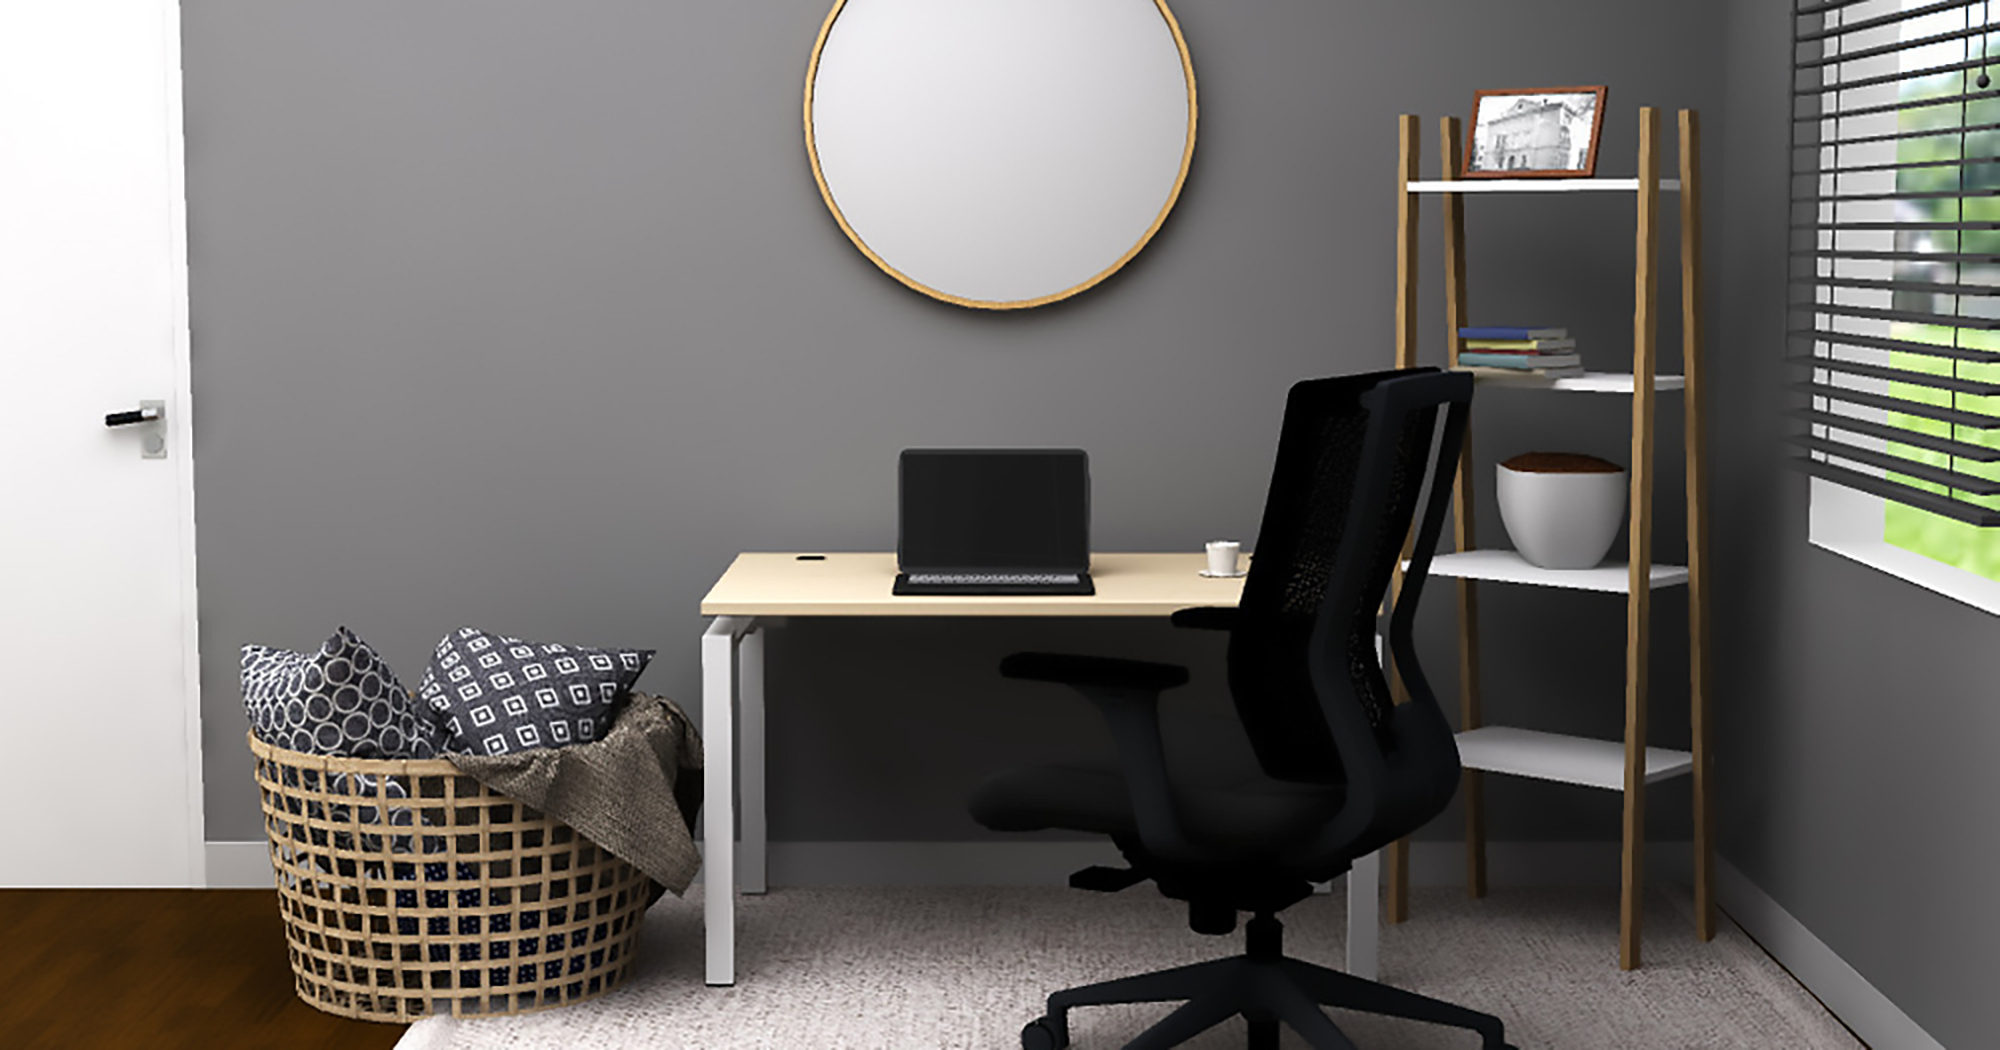 If you prefer sitting to work, the Blade table desk from Clear Design has an airy design that fits anywhere in your home.